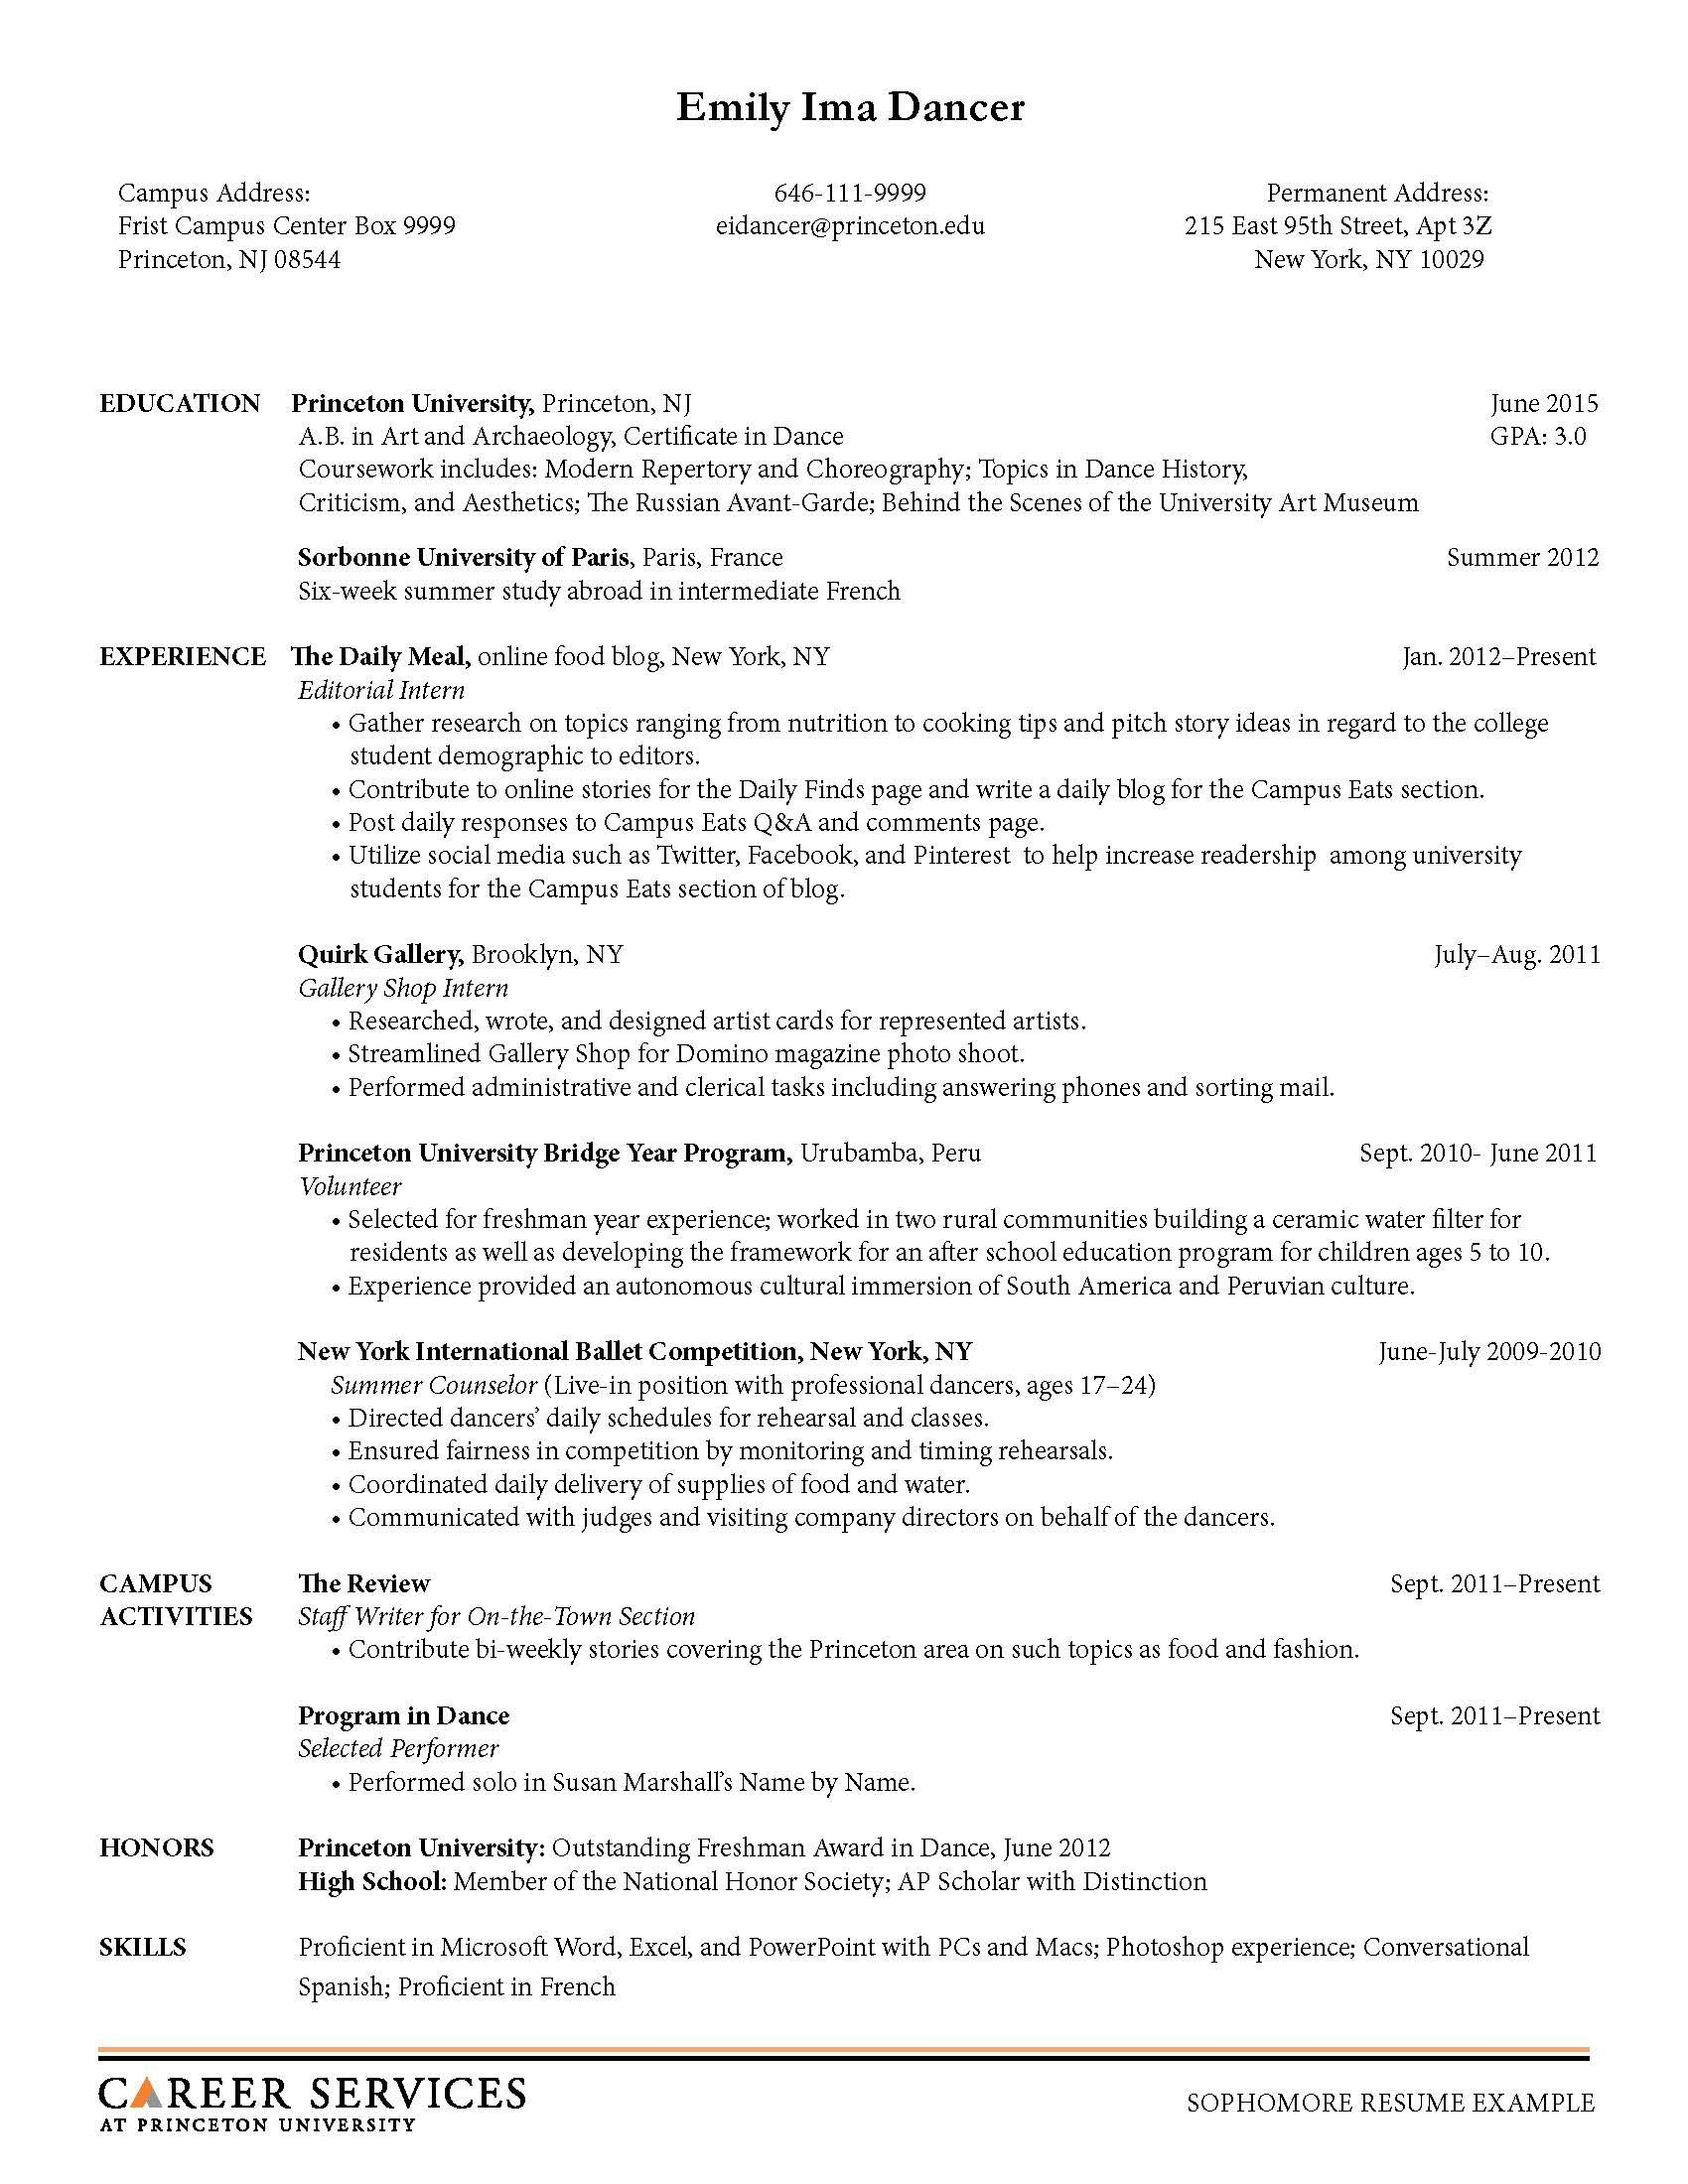 Picnictoimpeachus  Prepossessing Sample Resume Resume And Career On Pinterest With Glamorous Free Functional Resume Template Besides Resume Template Google Furthermore Resume Update With Amusing How To Make Your Own Resume Also Resume Nursing In Addition How To Do A Resume On Microsoft Word And Cashier Resume Objective As Well As Resume For Retail Store Additionally Lpn Resume Skills From Pinterestcom With Picnictoimpeachus  Glamorous Sample Resume Resume And Career On Pinterest With Amusing Free Functional Resume Template Besides Resume Template Google Furthermore Resume Update And Prepossessing How To Make Your Own Resume Also Resume Nursing In Addition How To Do A Resume On Microsoft Word From Pinterestcom